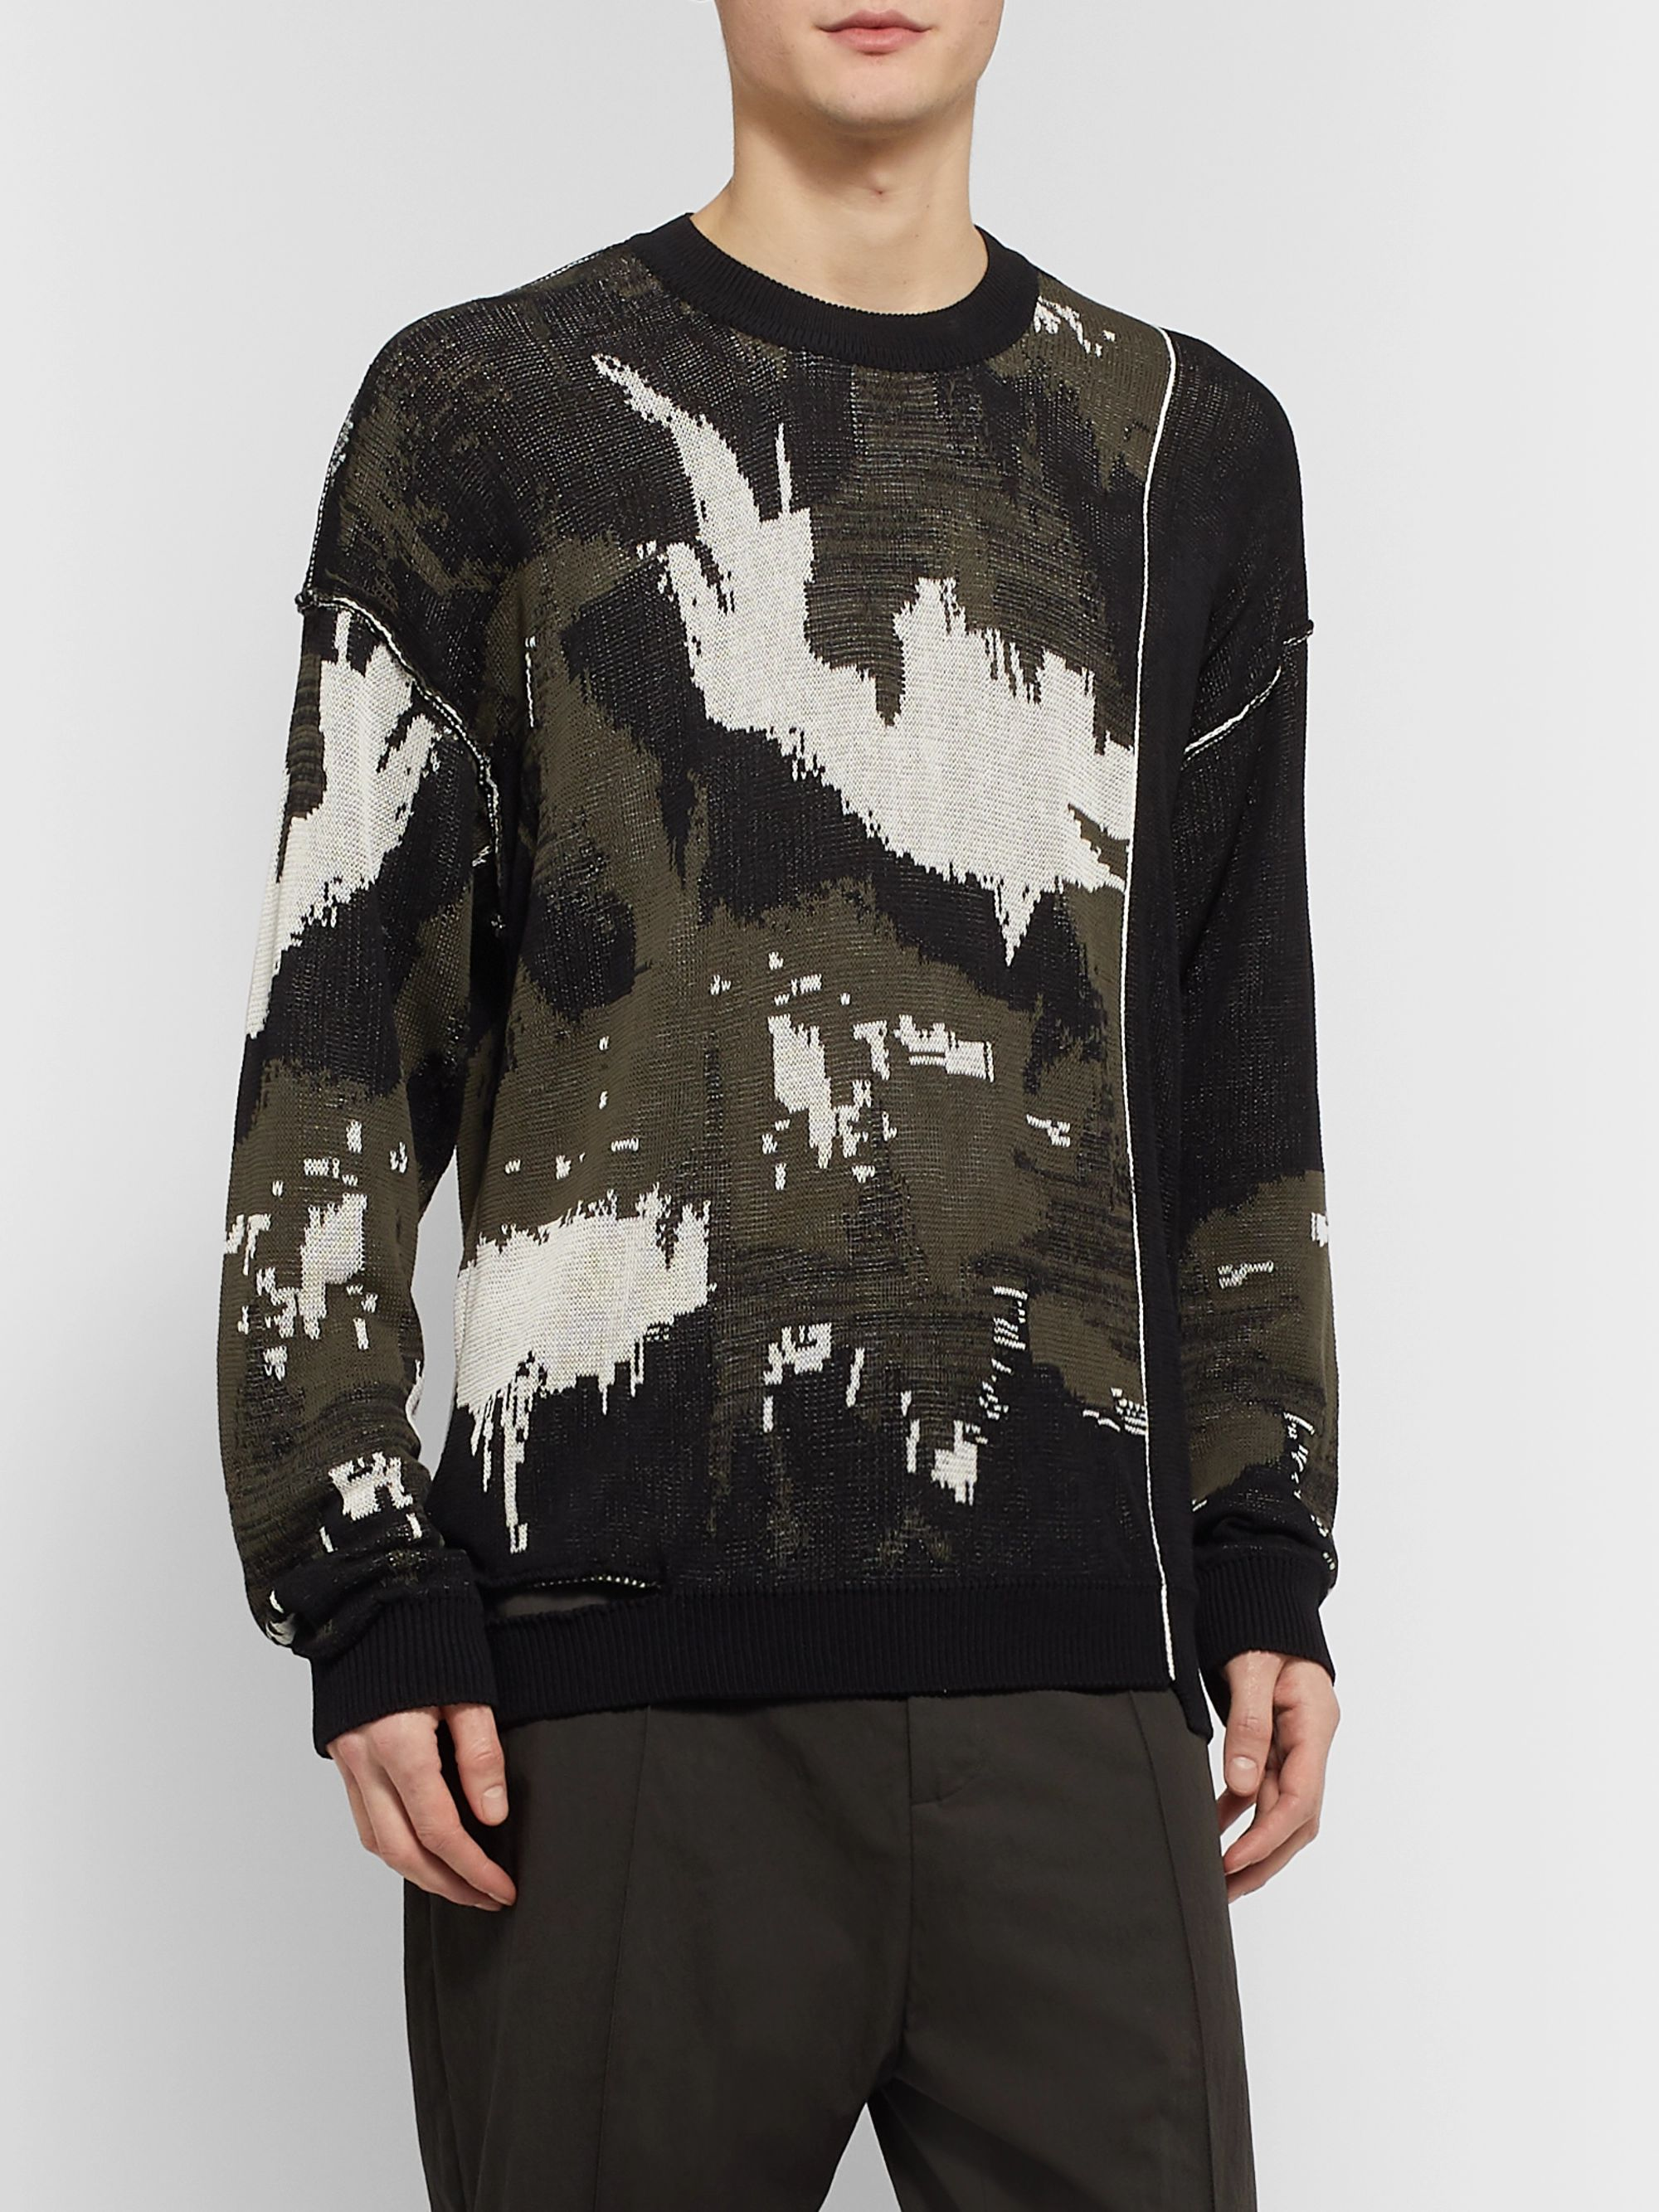 Isabel Benenato Oversized Distressed Cotton-Jacquard Sweater